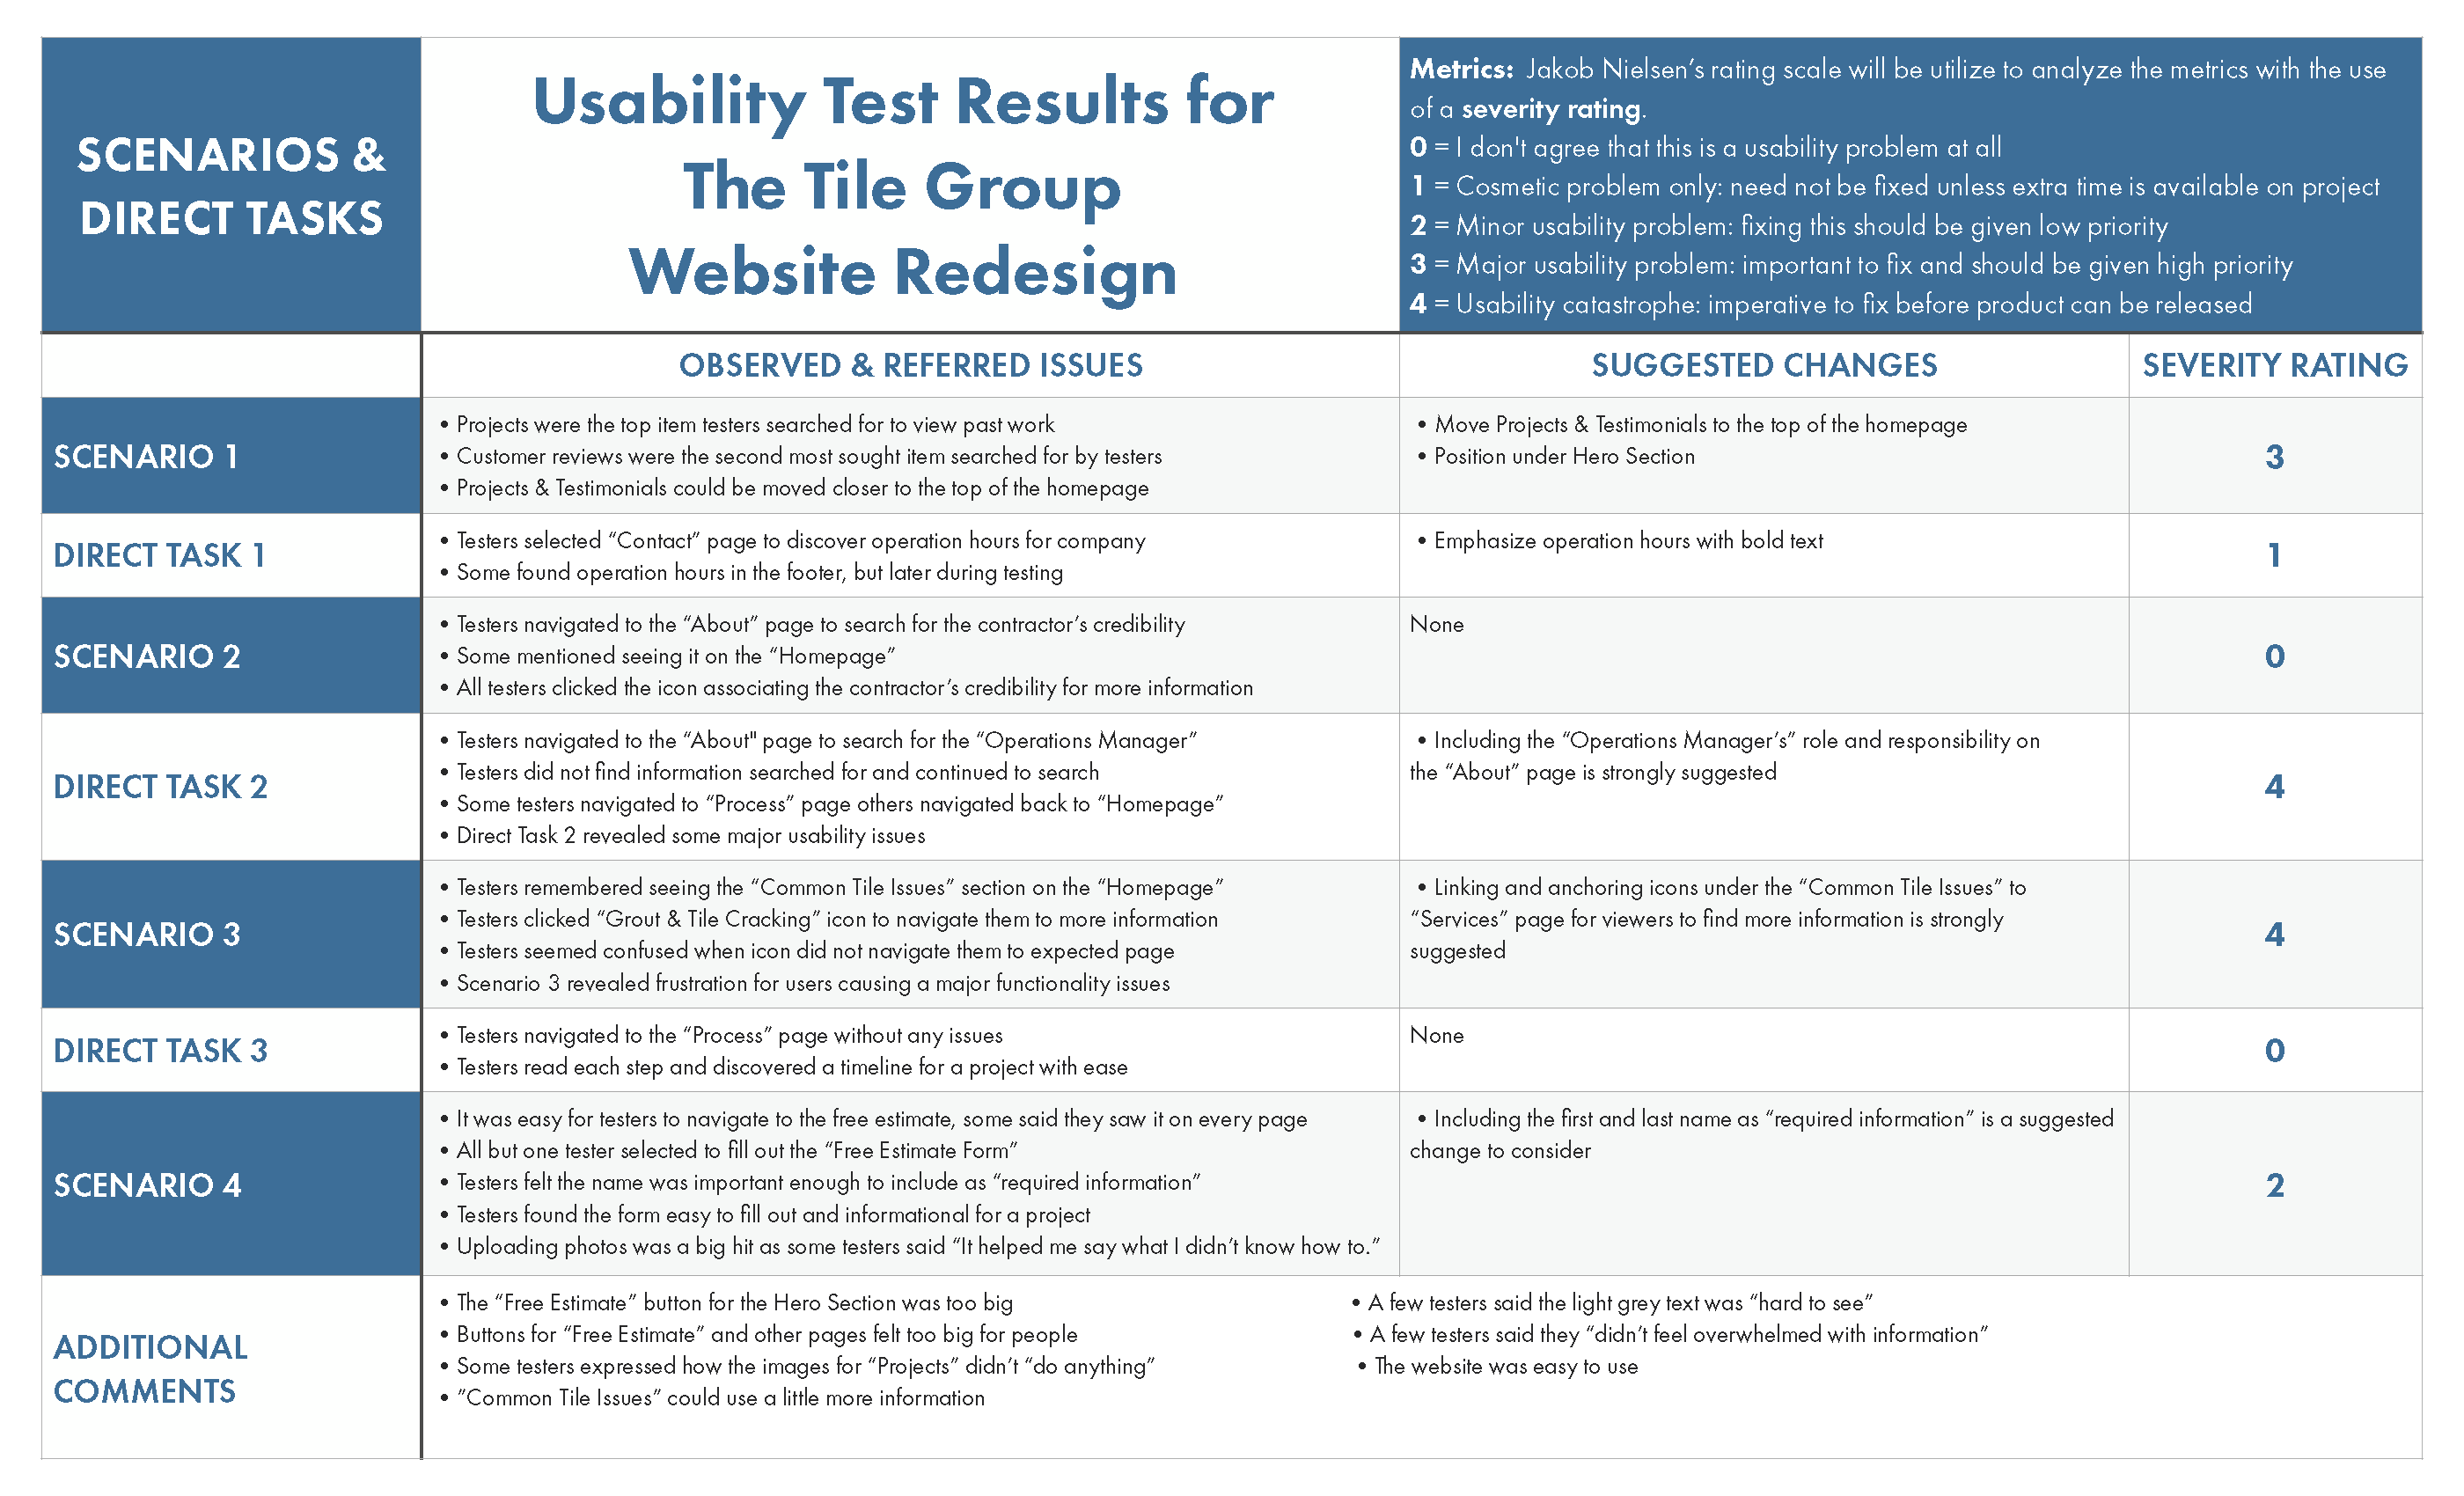 Usability Test Results Table